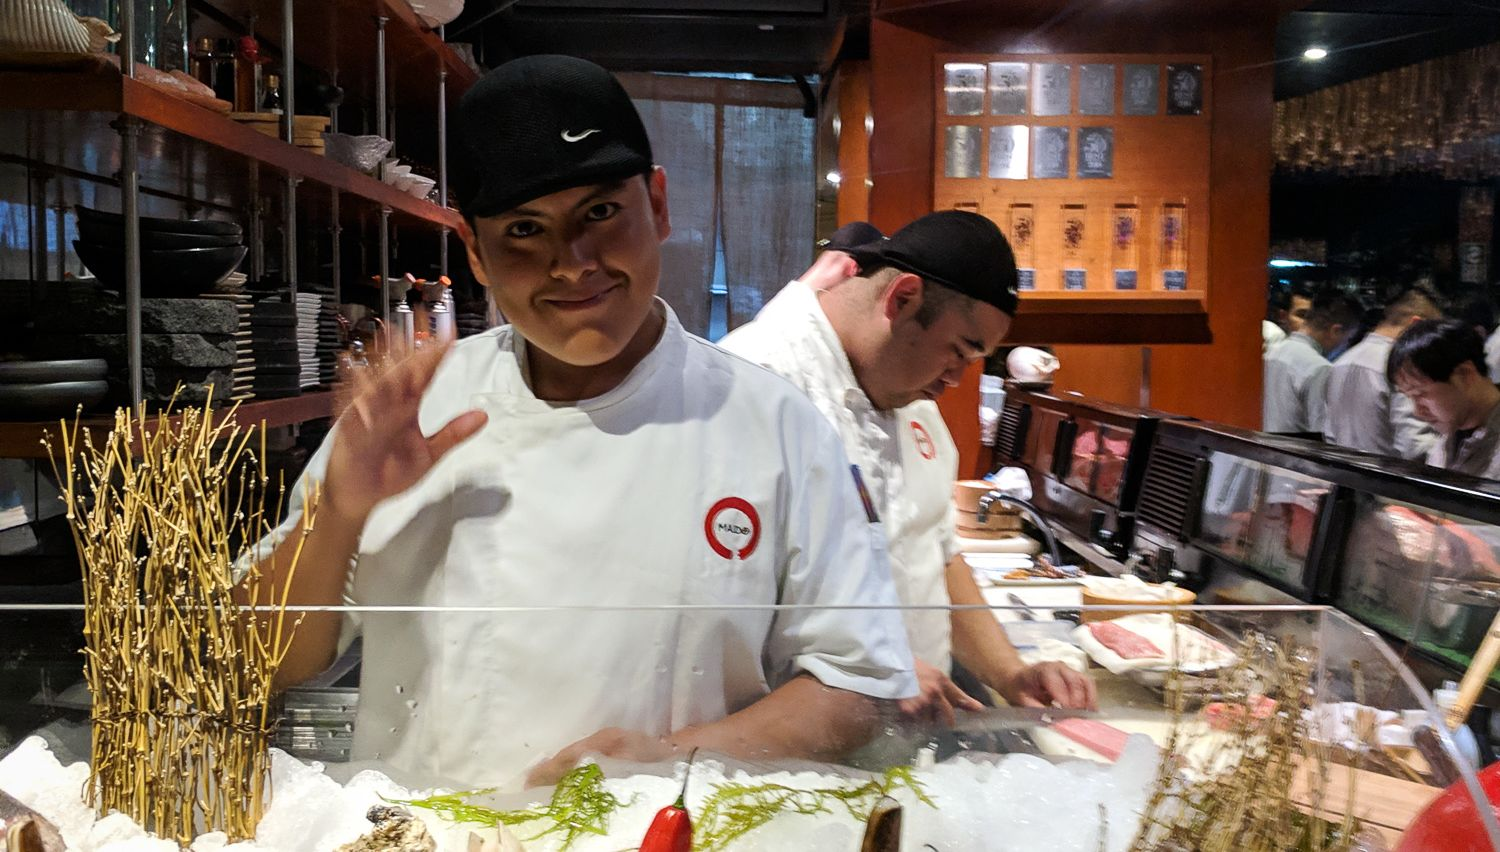 One of the chef's giving us a wave